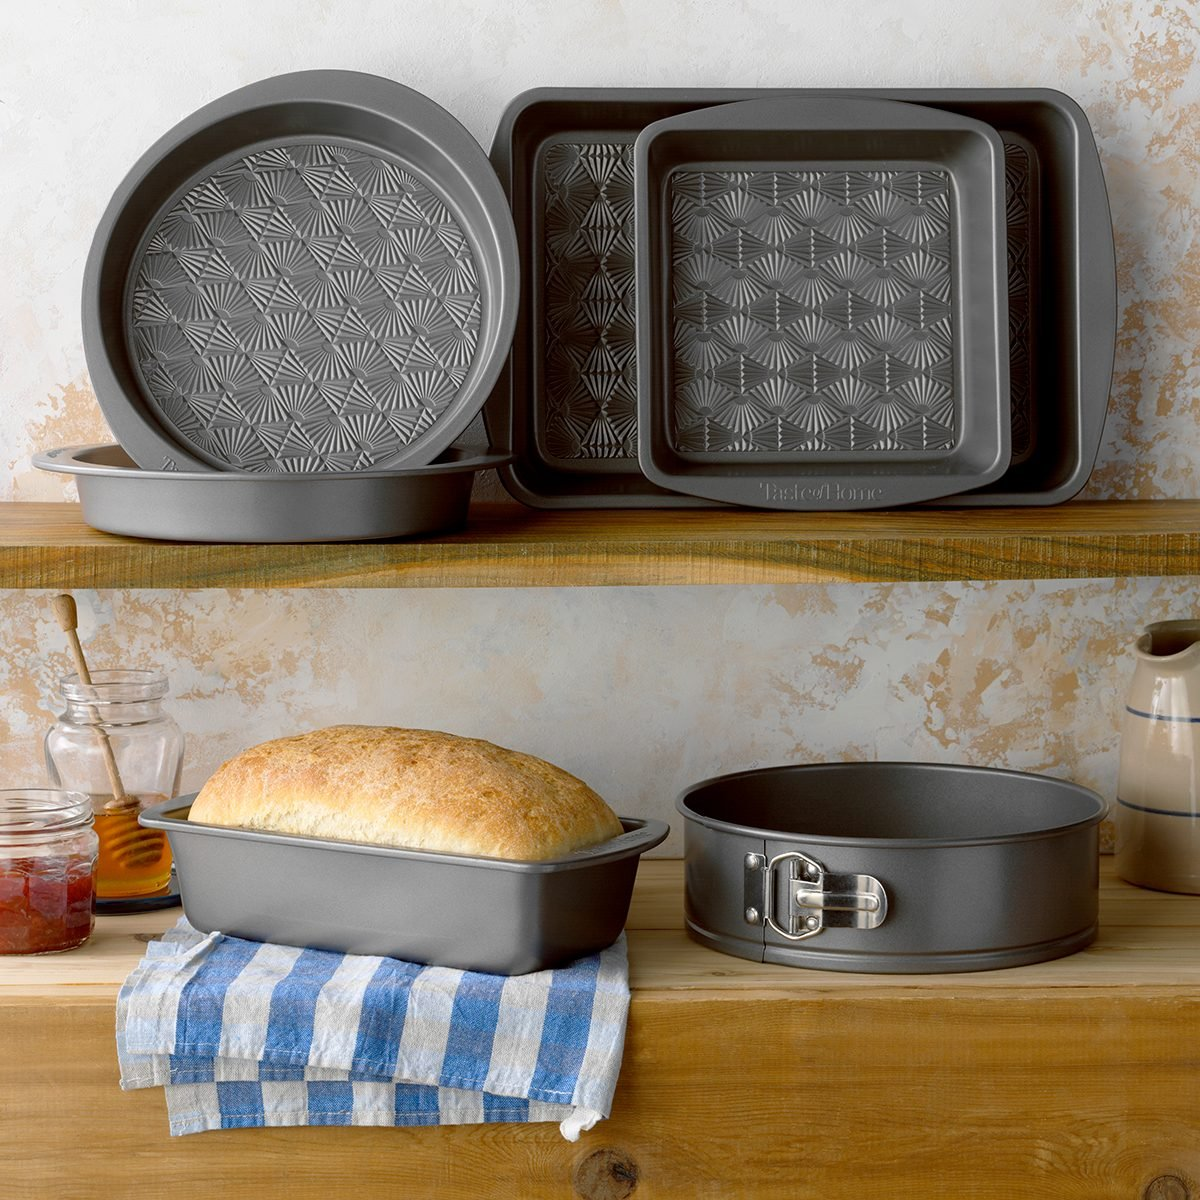 Best Baking Gifts: 15 Ideas for the